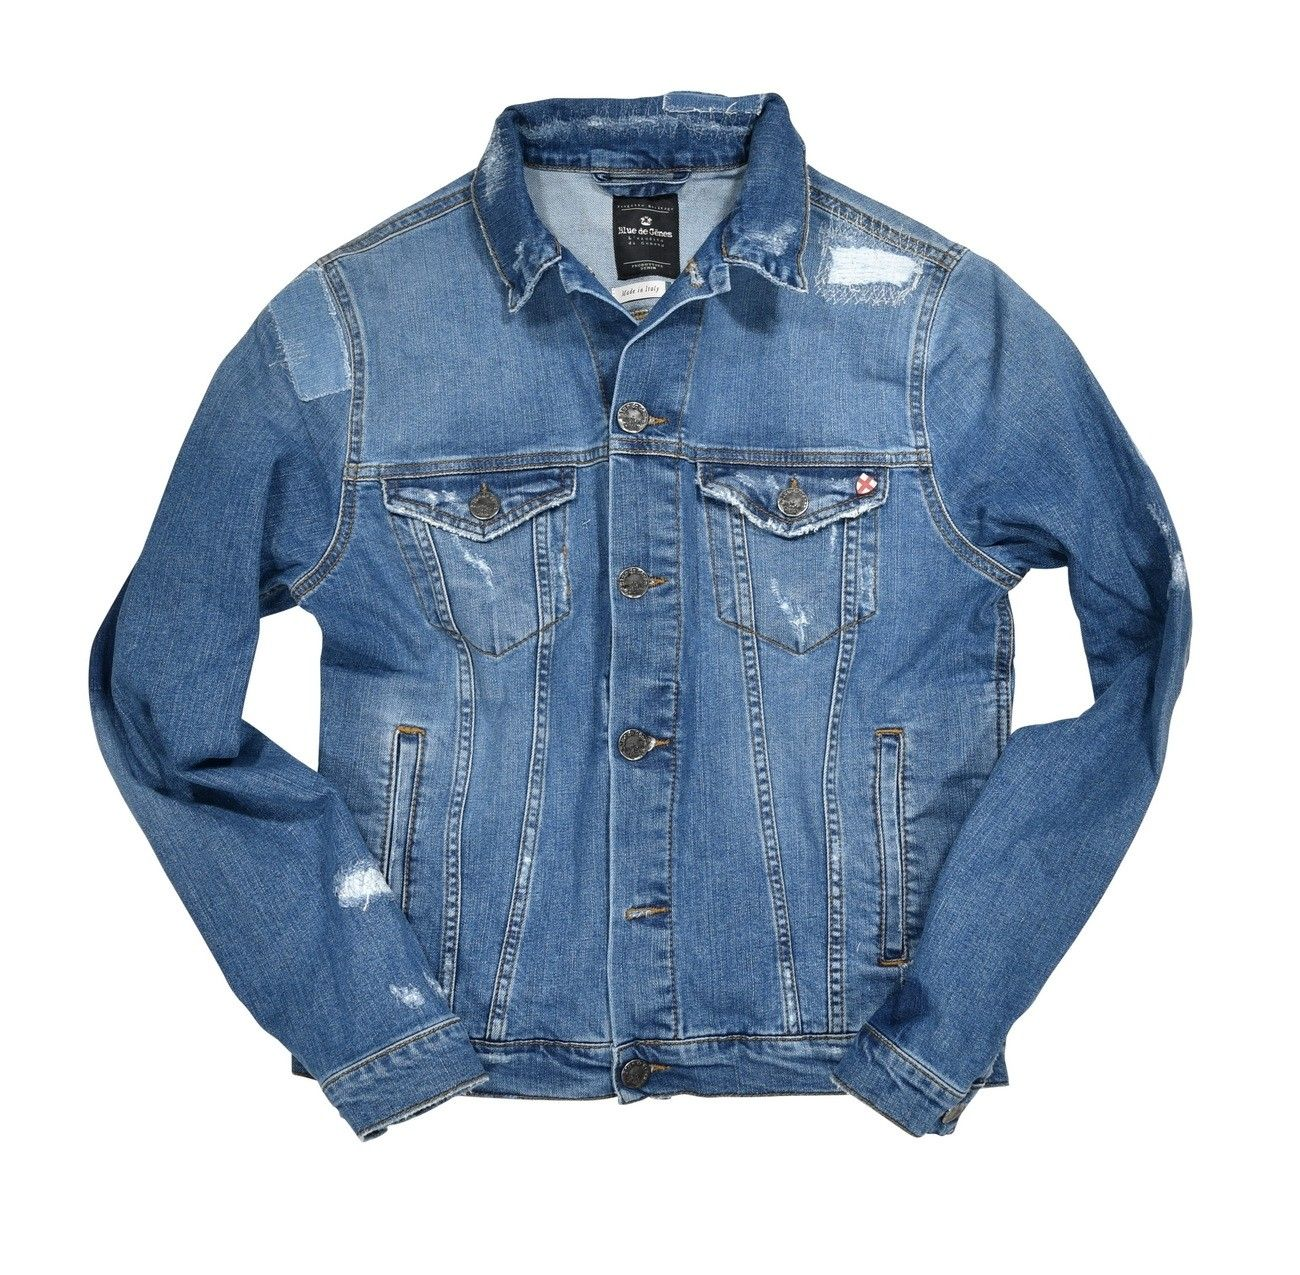 BLUE DE GÊNES - Herren Jeansjacke - Fabio N1 Denim Jacket - Light